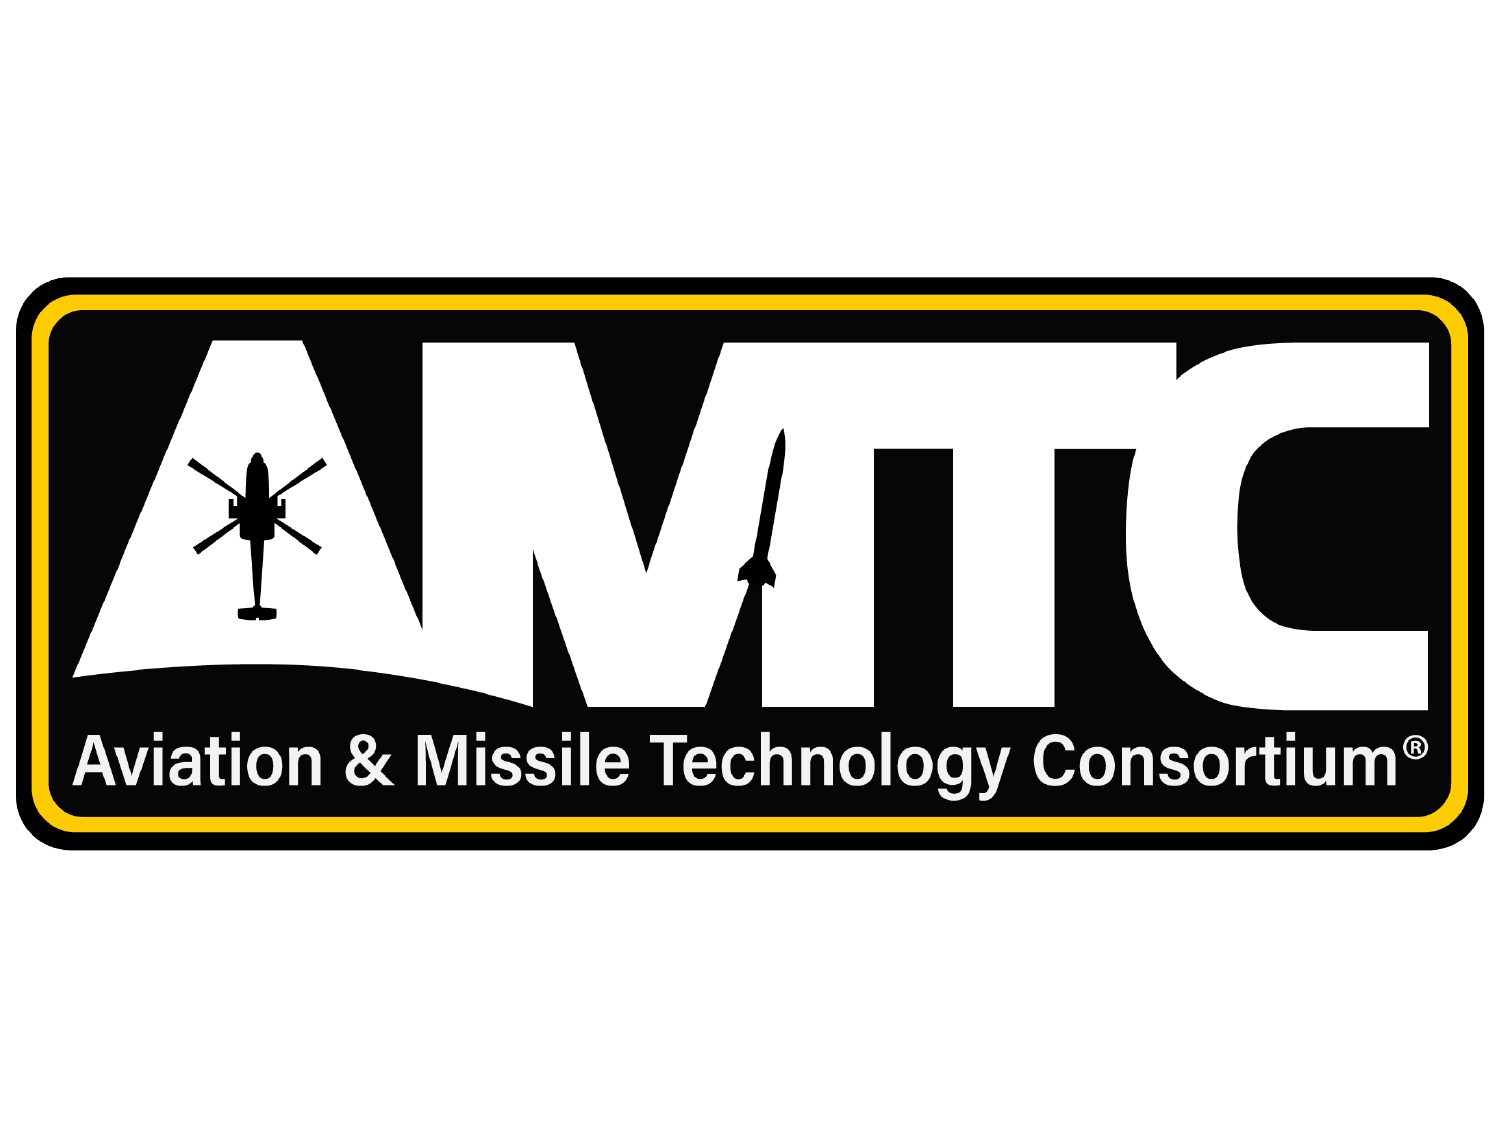 Aviation & Missile Technology Consortium logo